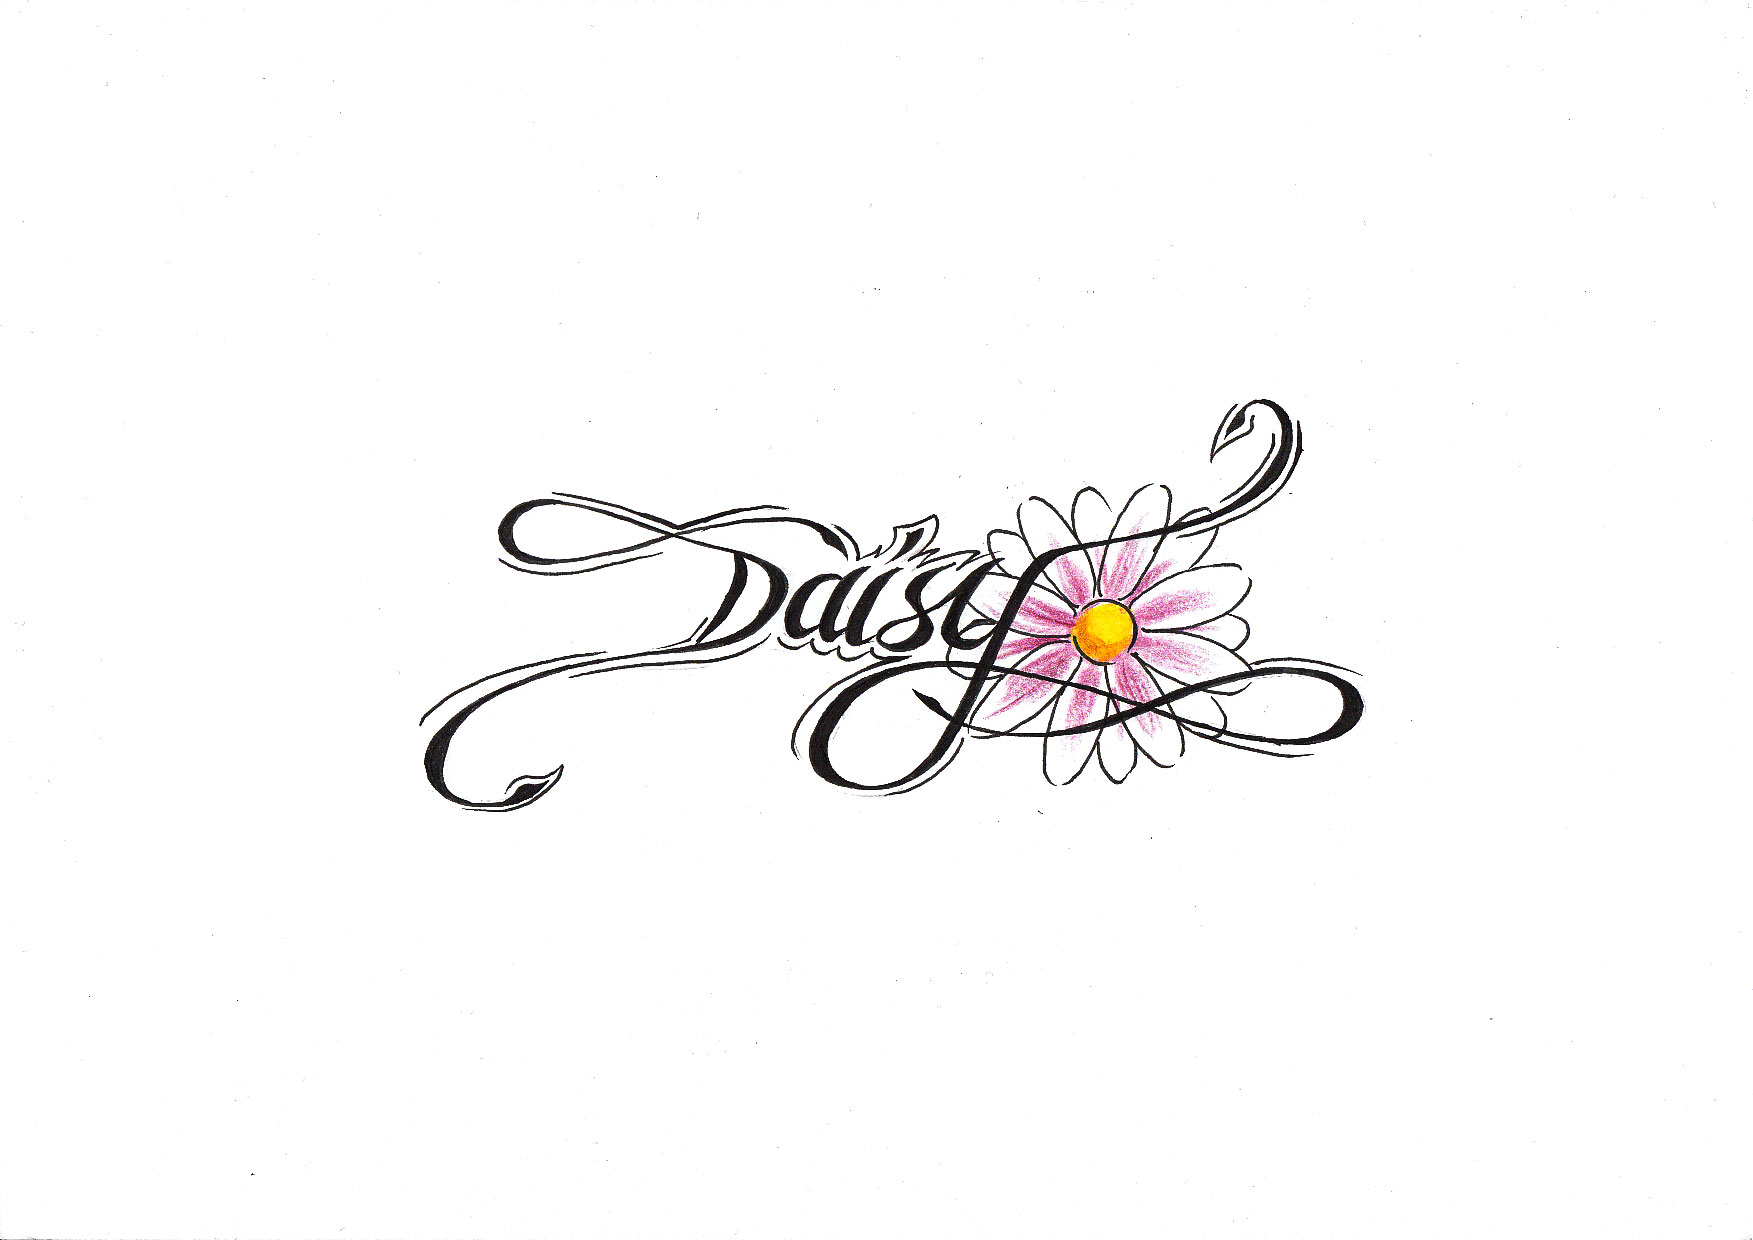 Daisy flower tattoo design izmirmasajfo Image collections